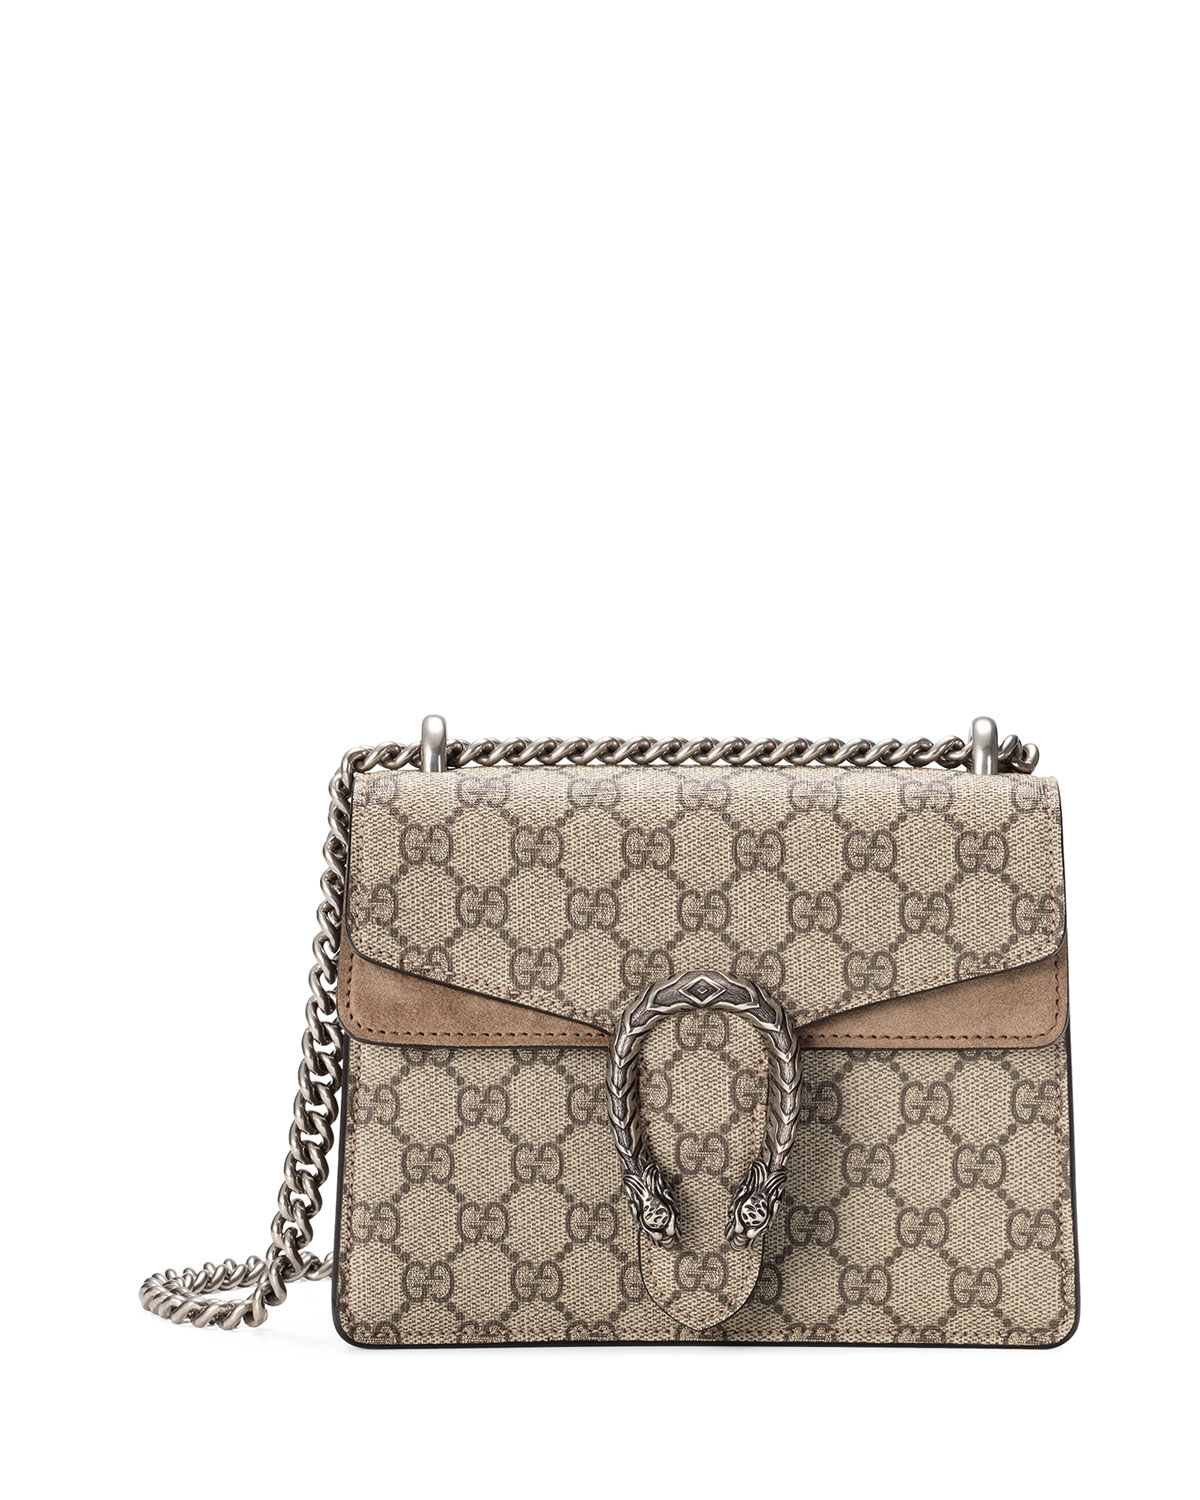 b1abdb7e6966 Gucci Mini Dionysus GG Supreme Shoulder Bag